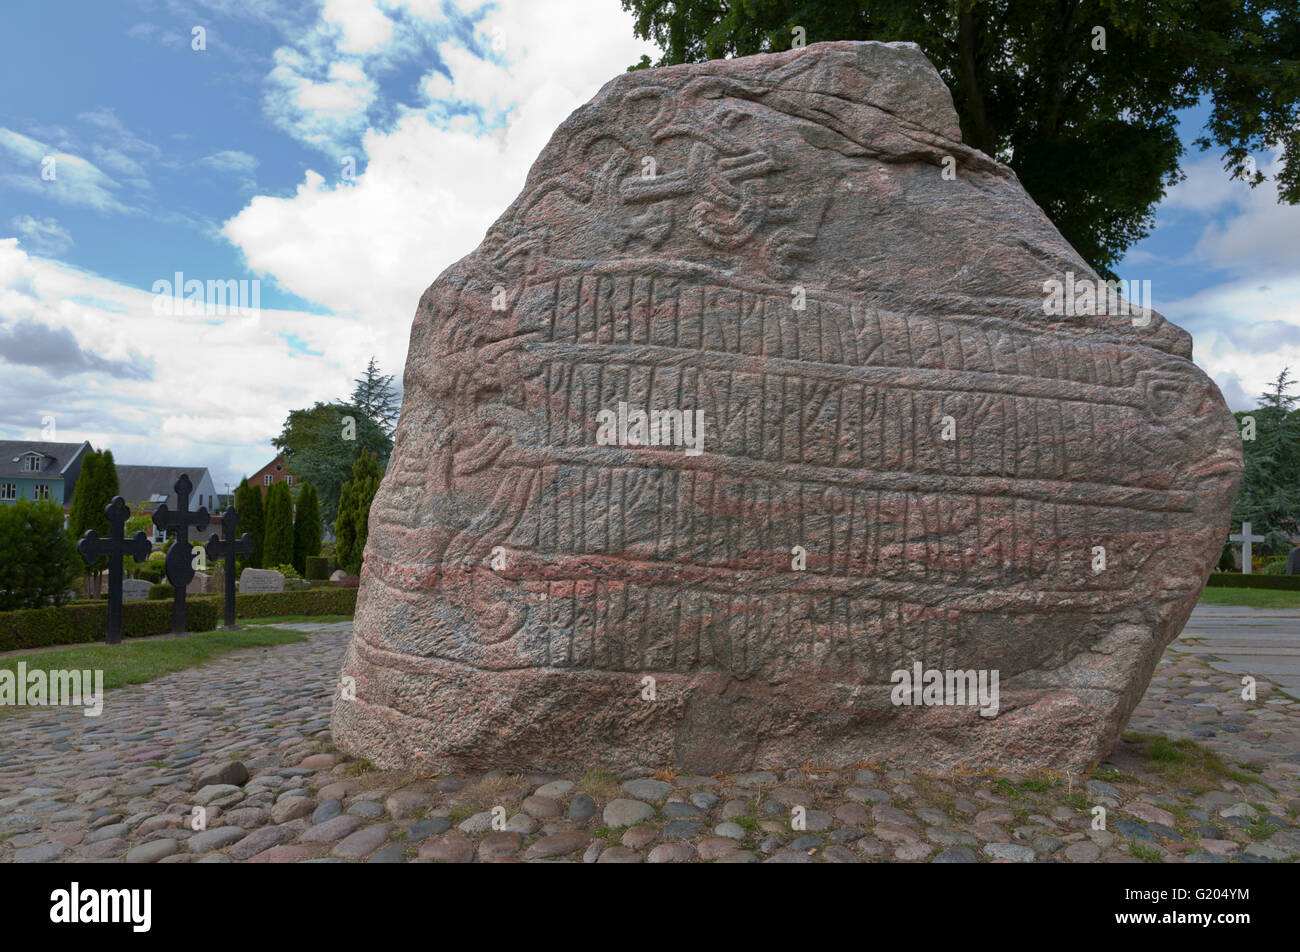 Runic inscription on the large Jelling rune stone from the 10th century raised by King Harald Bluetooth in Jelling. Stock Photo